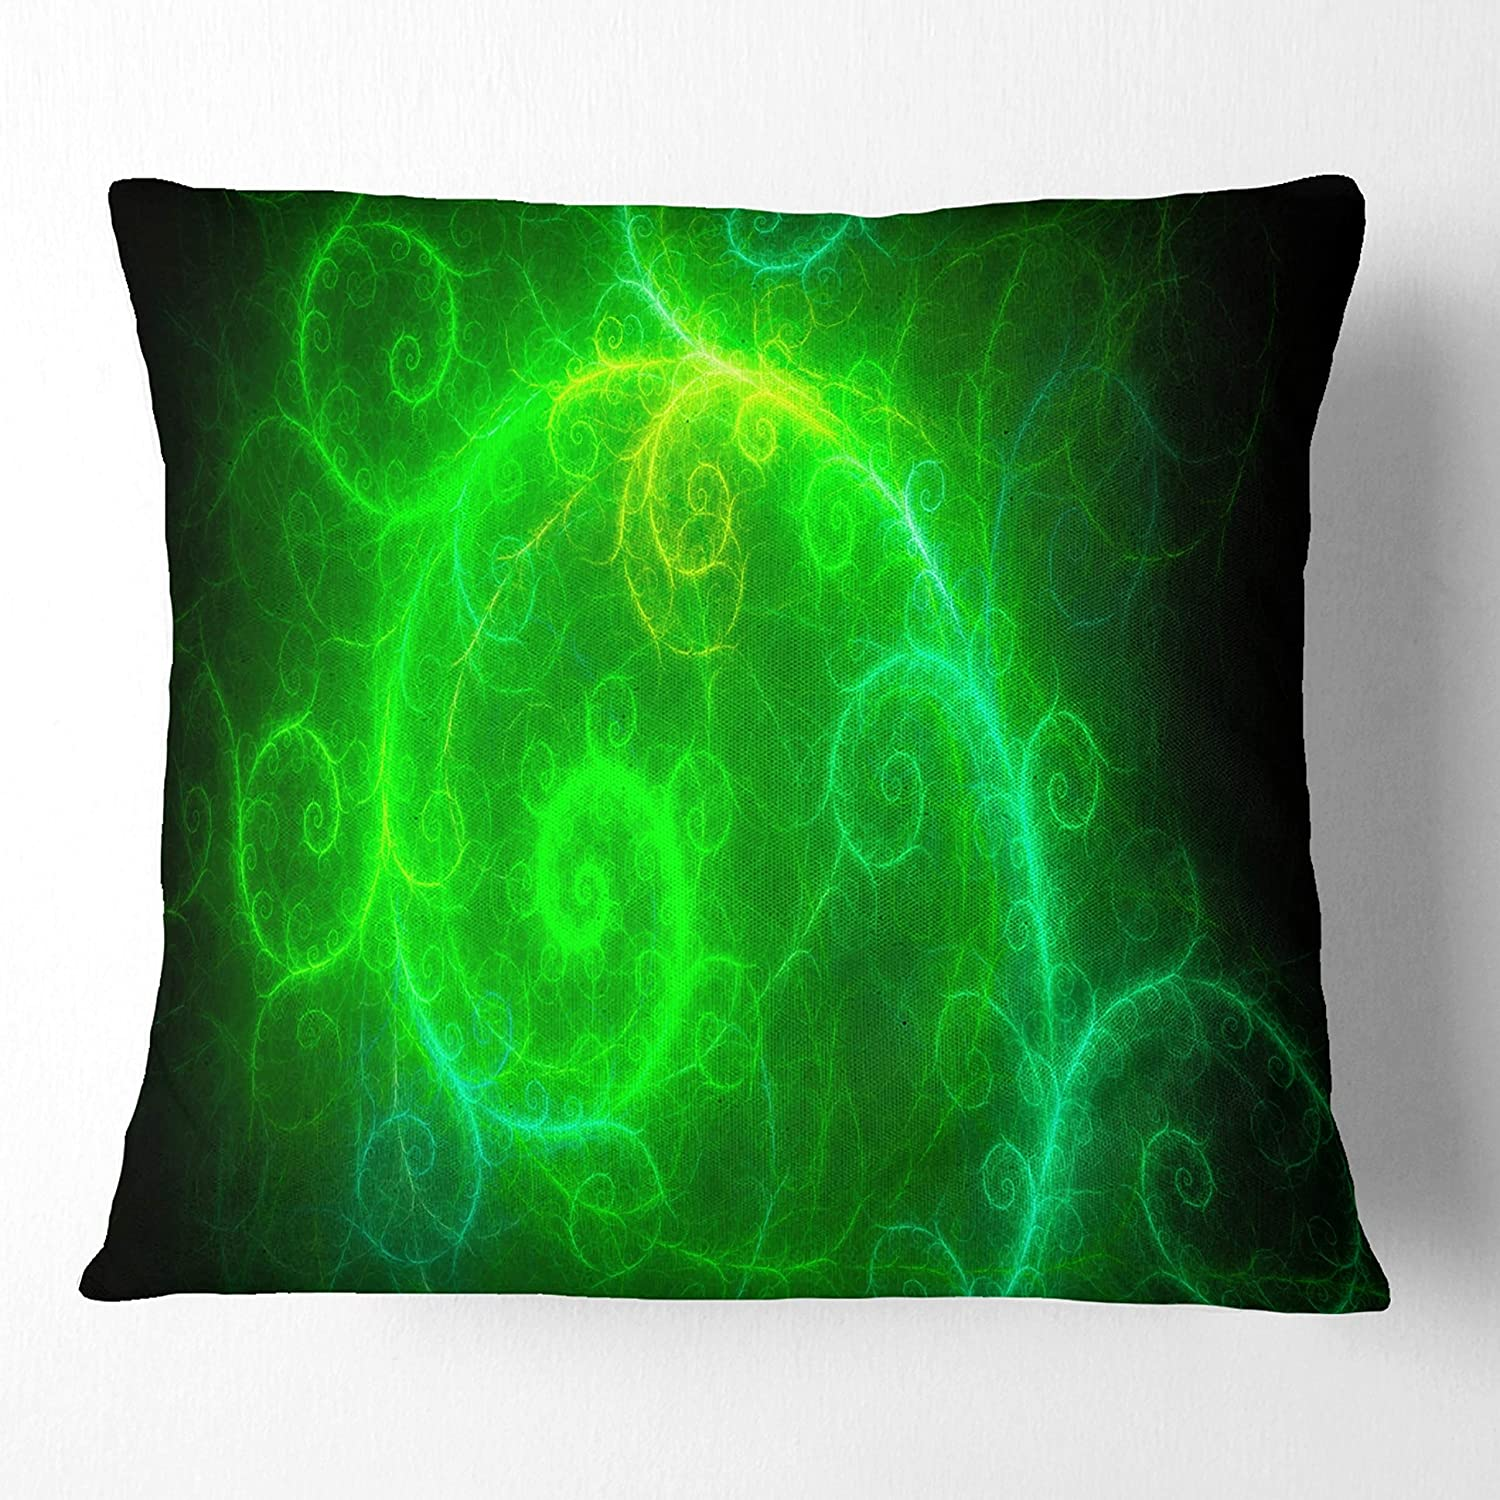 Sofa Throw Pillow 26 in in Designart CU15845-26-26 Beautiful Green Pattern on Black Abstract Cushion Cover for Living Room x 26 in